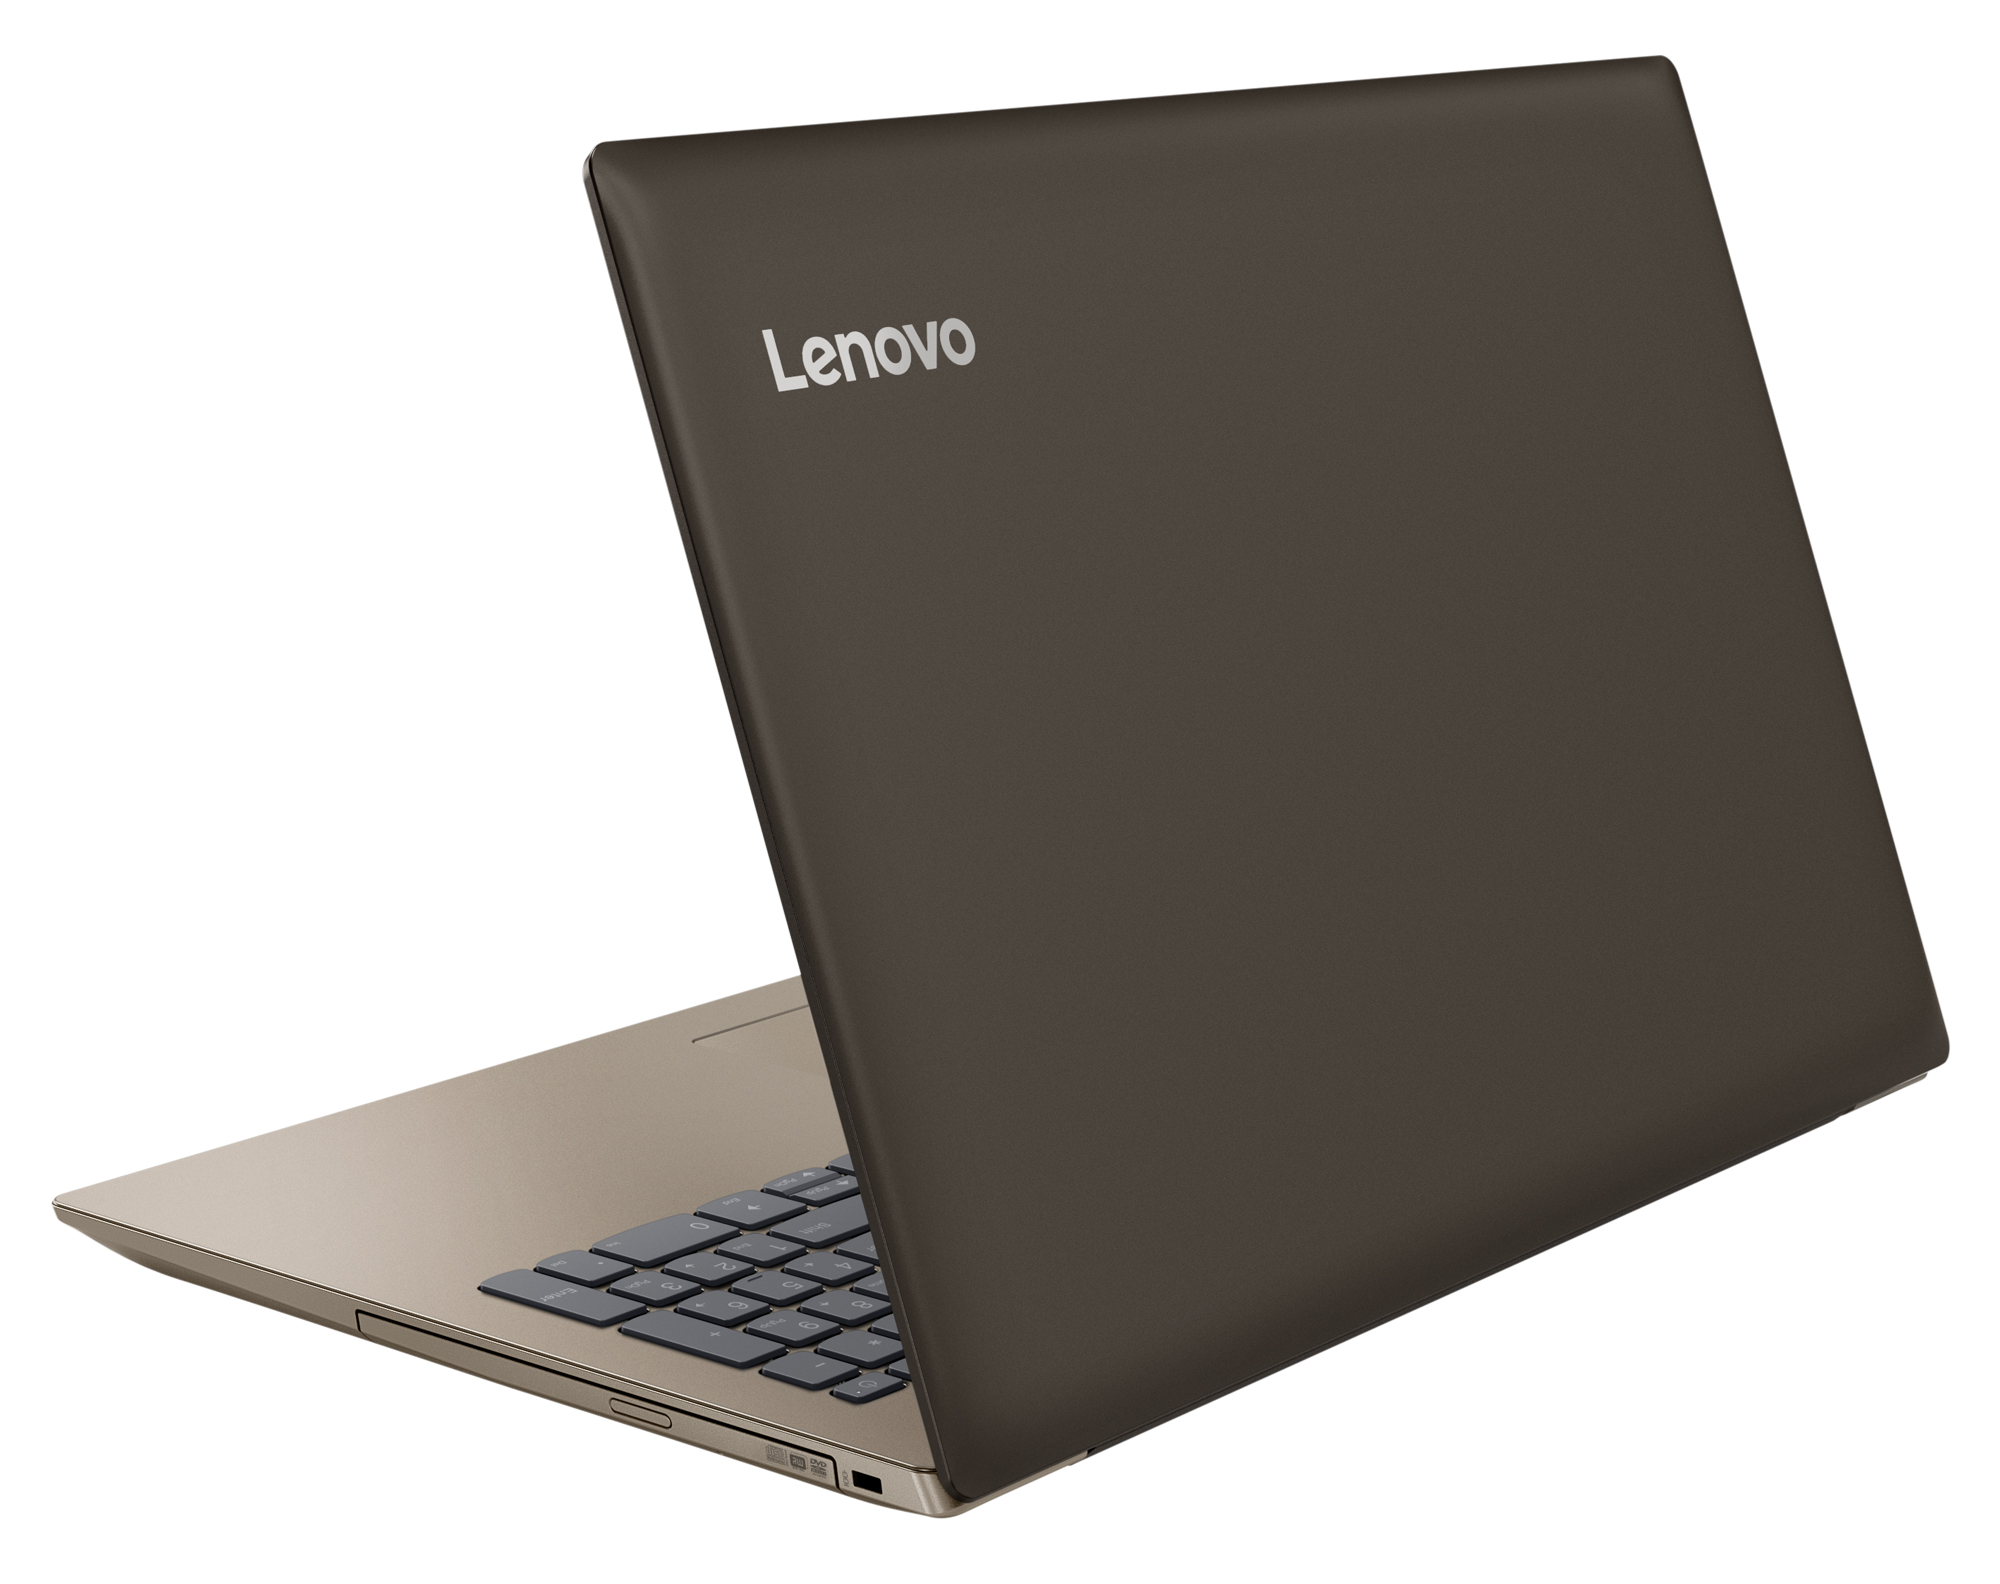 Фото  Ноутбук Lenovo ideapad 330-15 Chocolate (81DC010ERA)